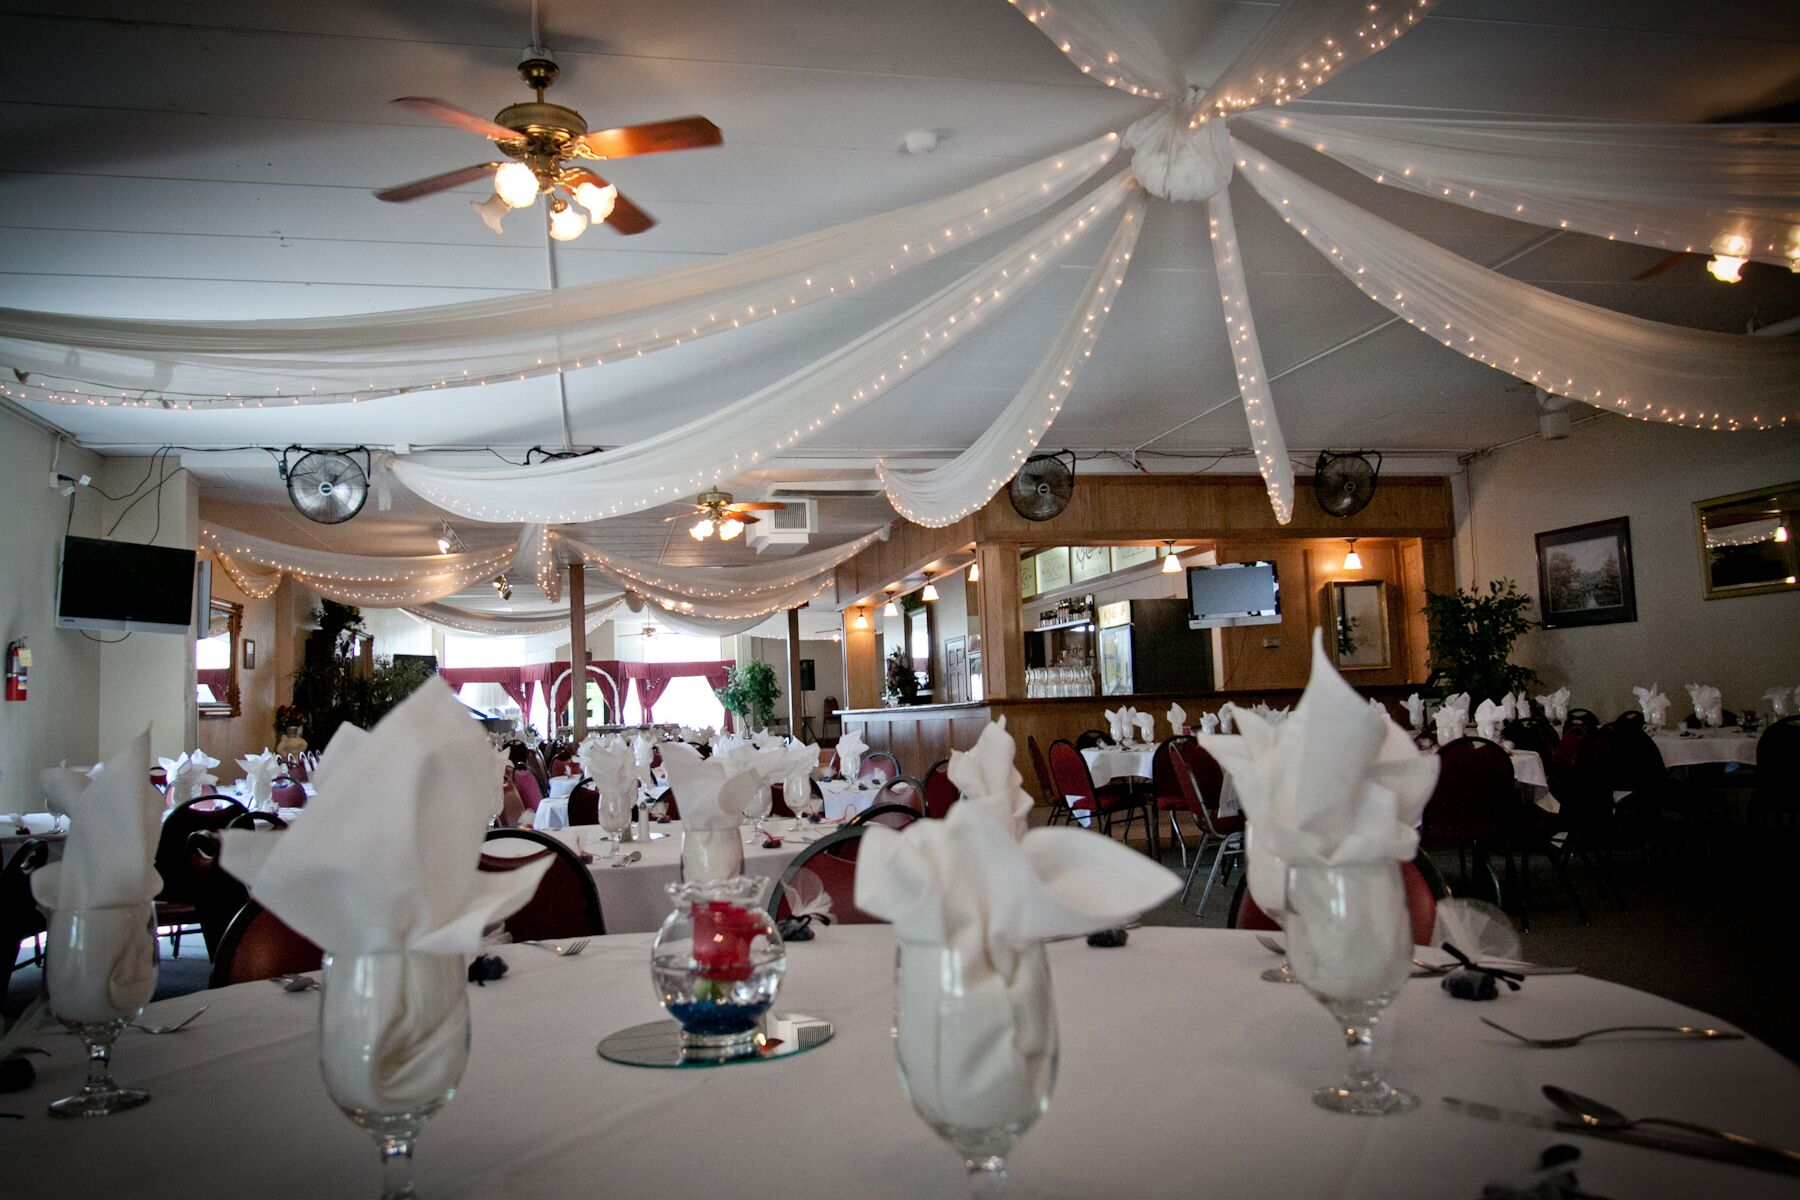 The Celebration Room Free Room Rental W Catering St